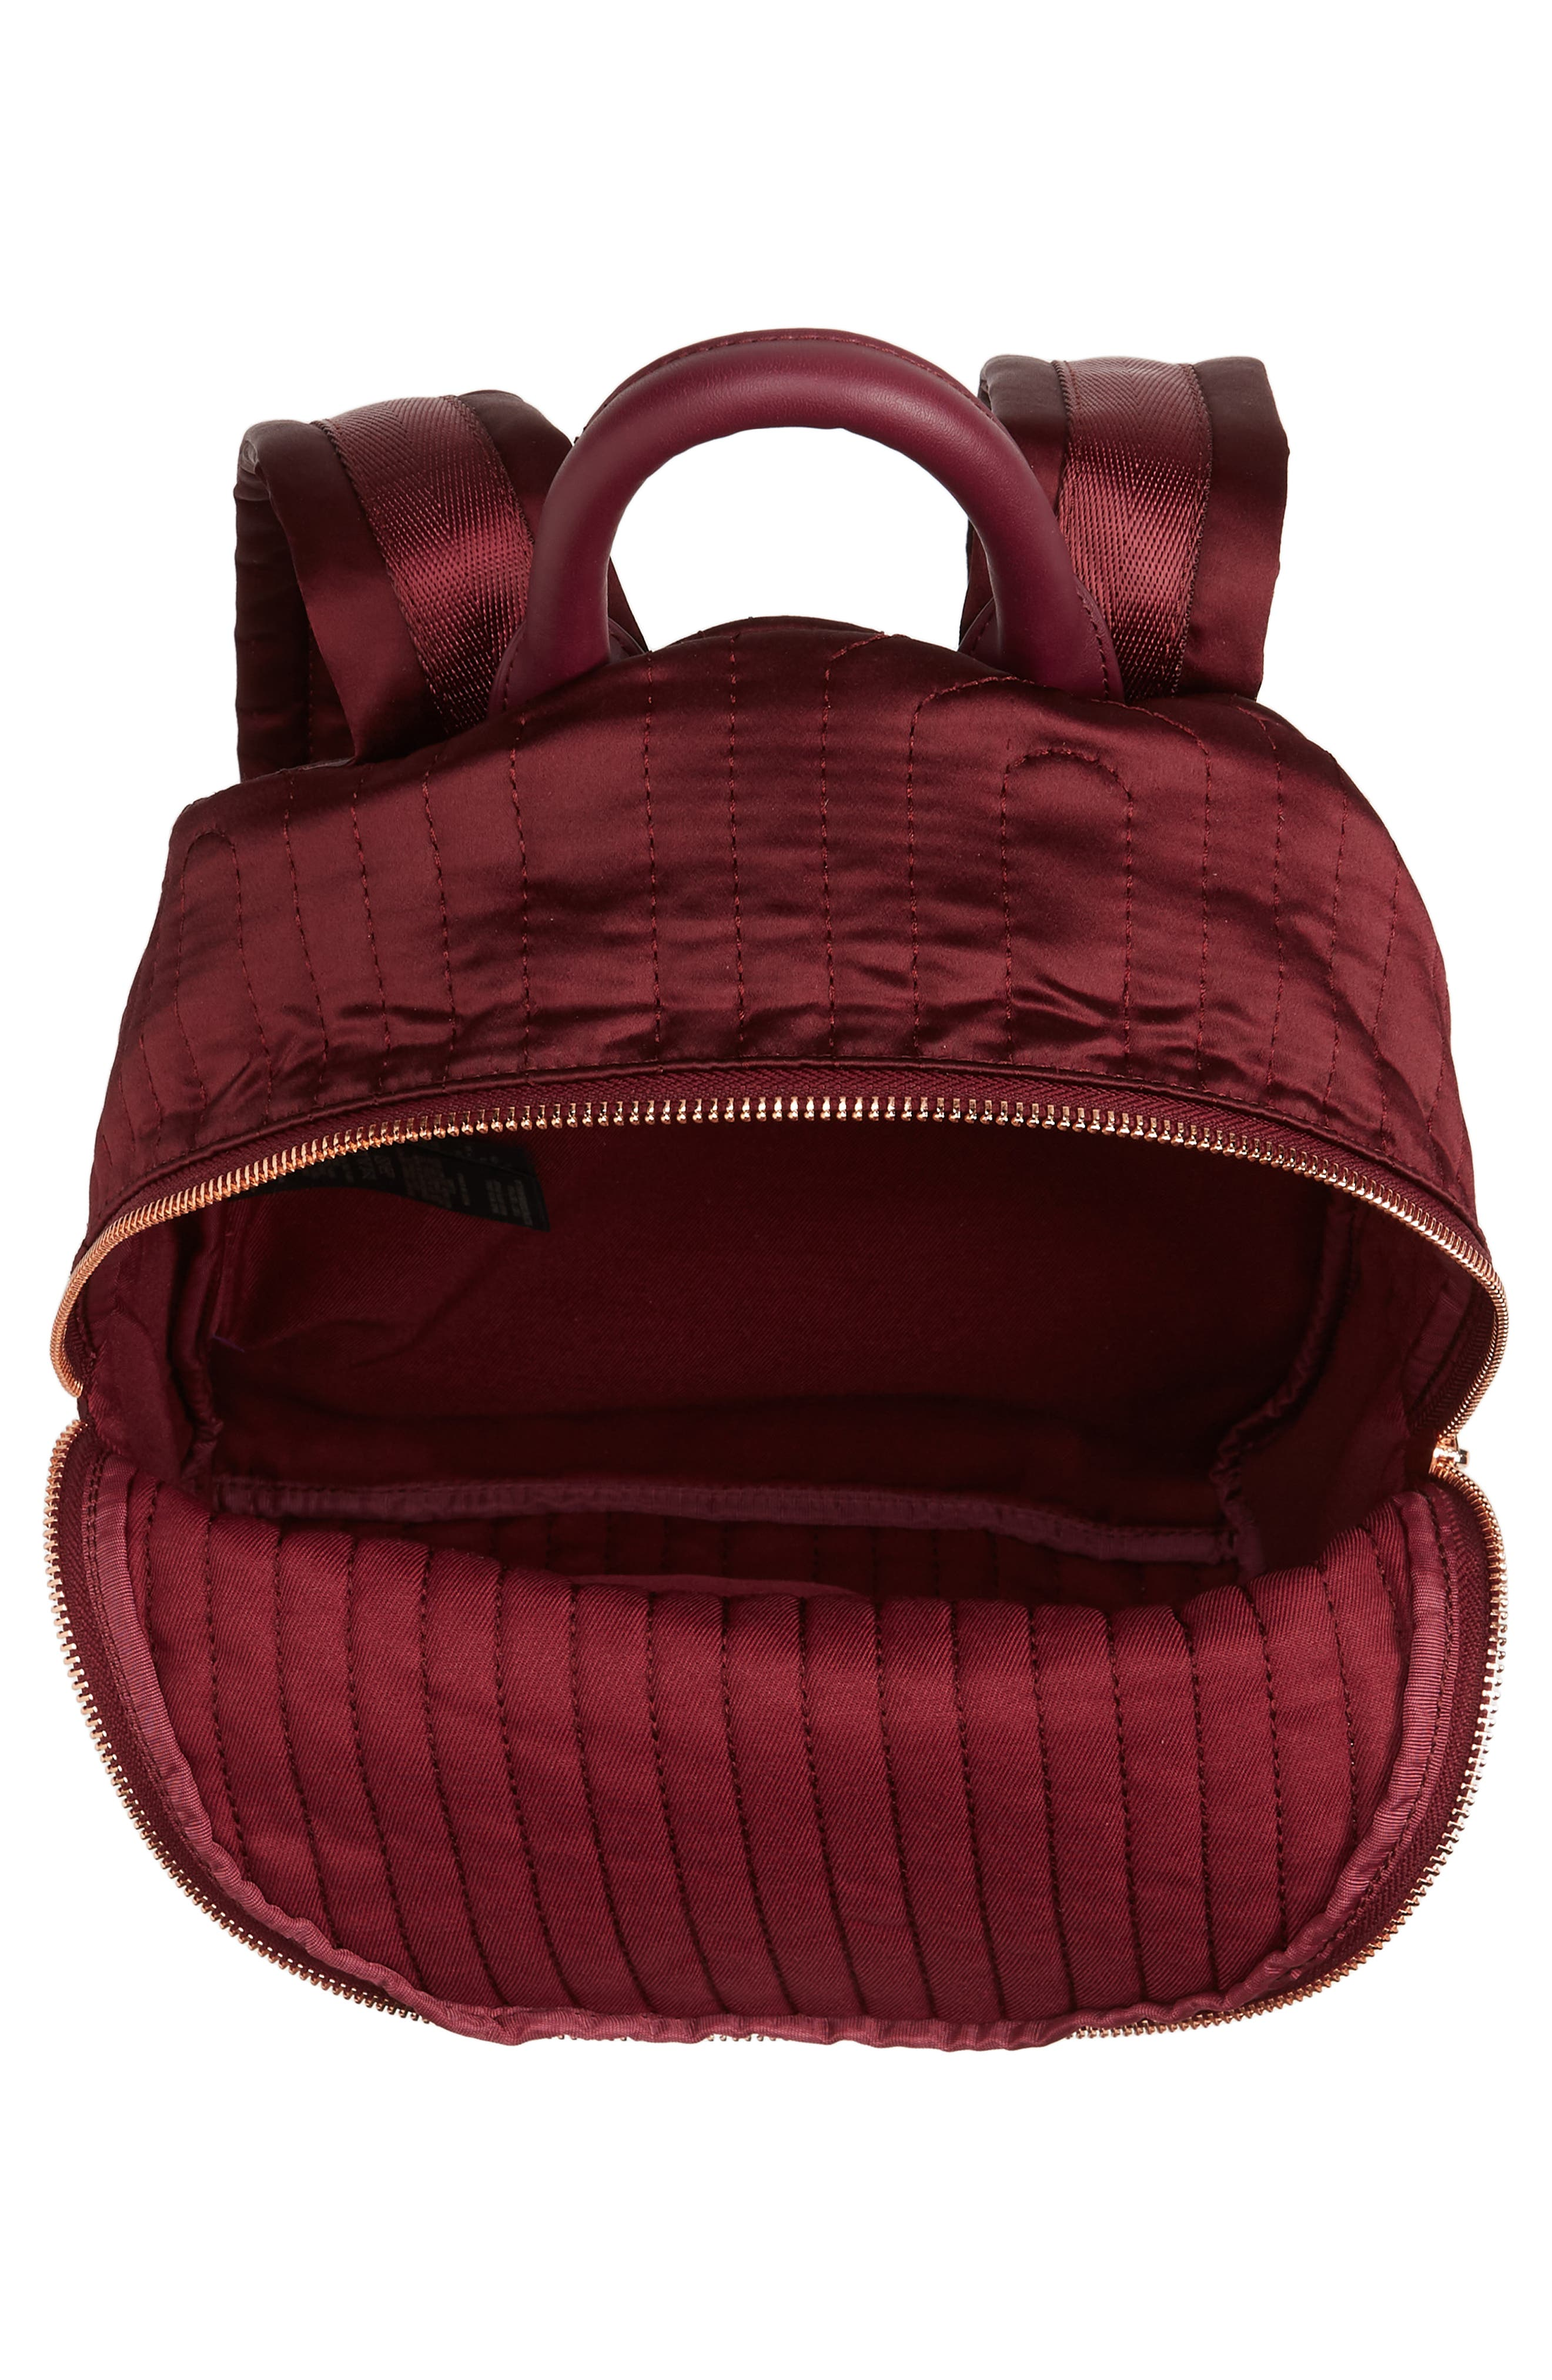 TED BAKER LONDON,                             Quilted Bow Backpack,                             Alternate thumbnail 4, color,                             210